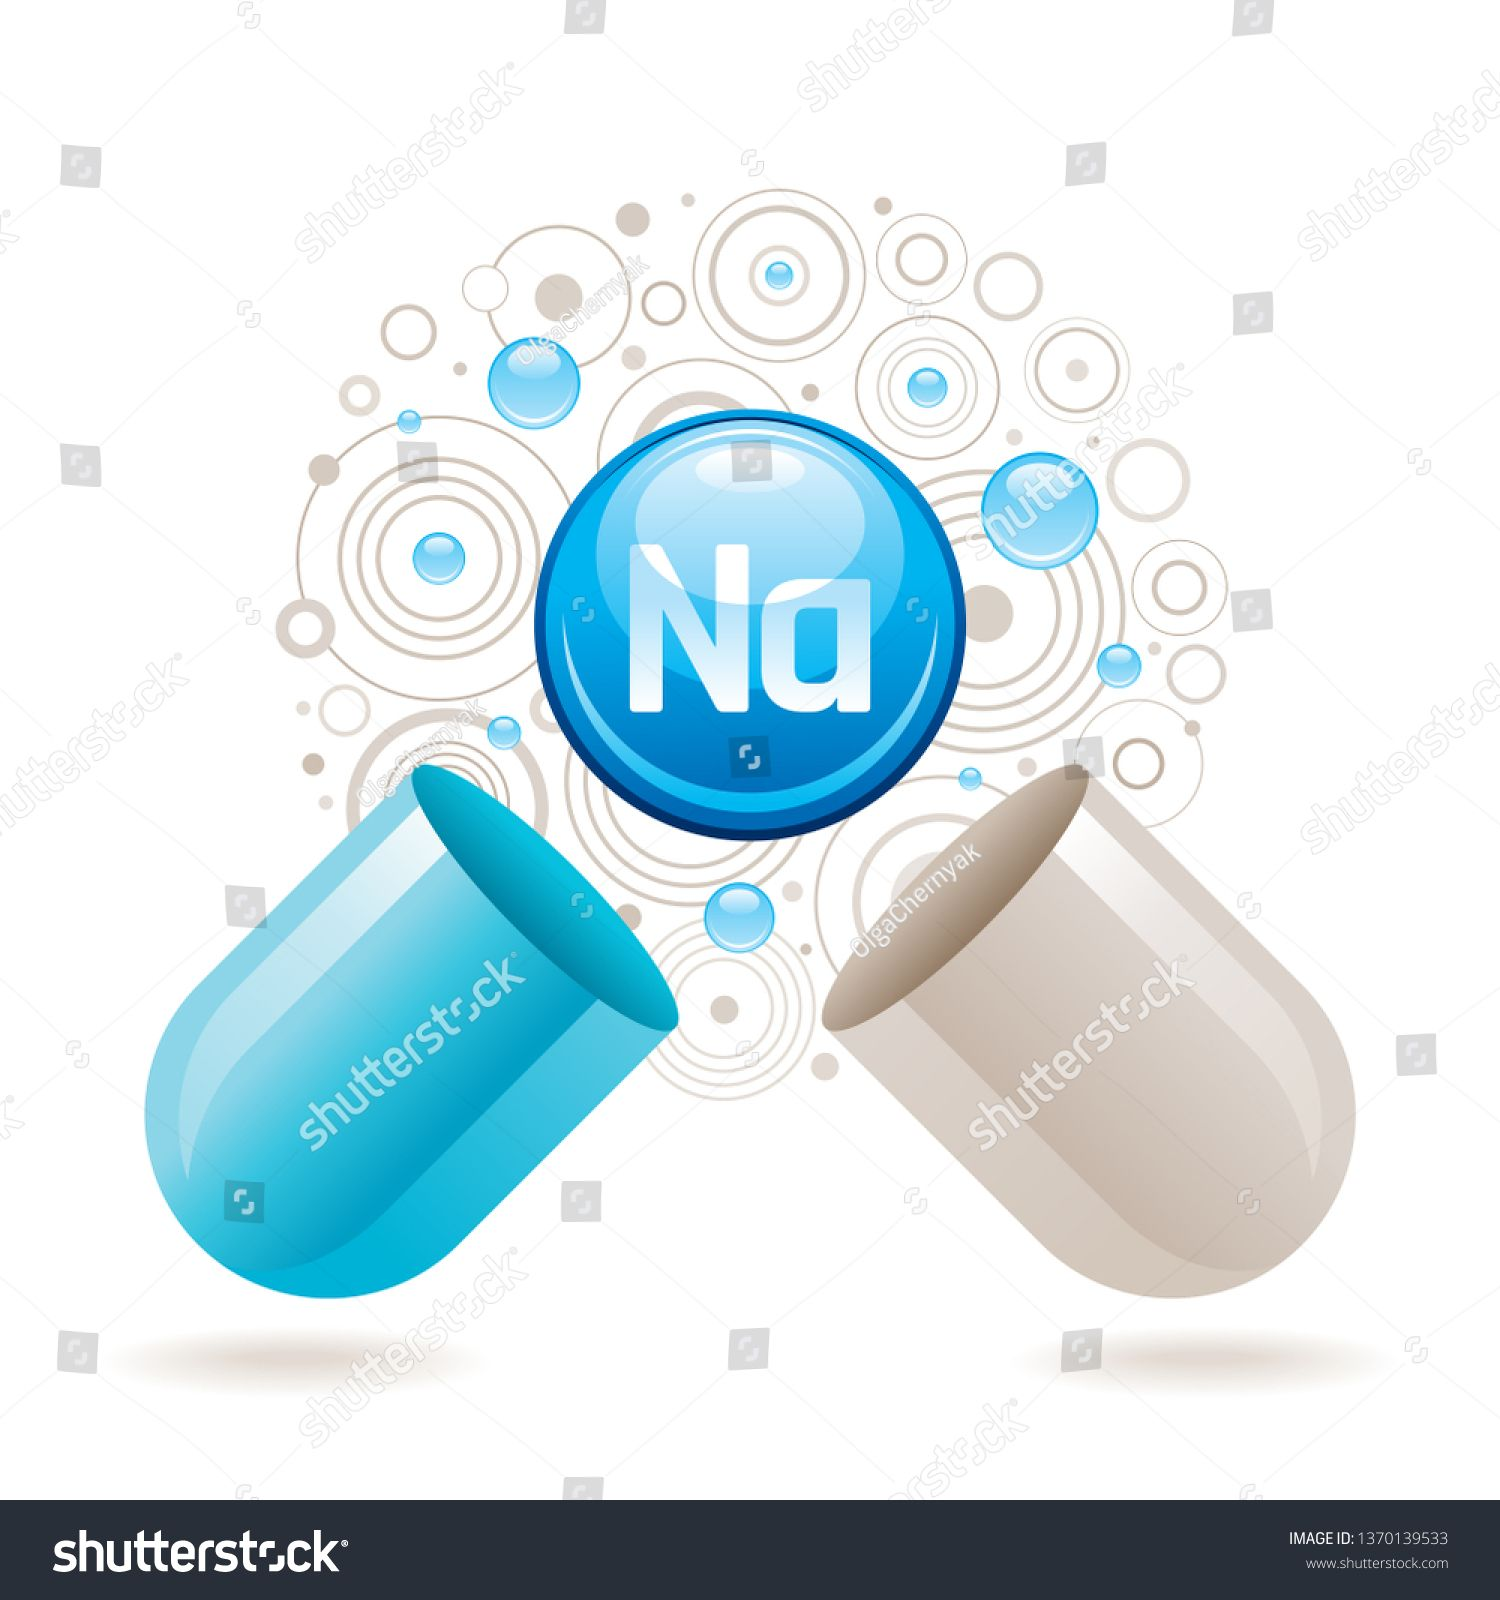 Mineral Vitamin Sodium Supplement For Health Capsule With Na Element Icon Healthy Diet Symbol 3d Color Ball Isolated On White Back Minerals Capsule Vitamins